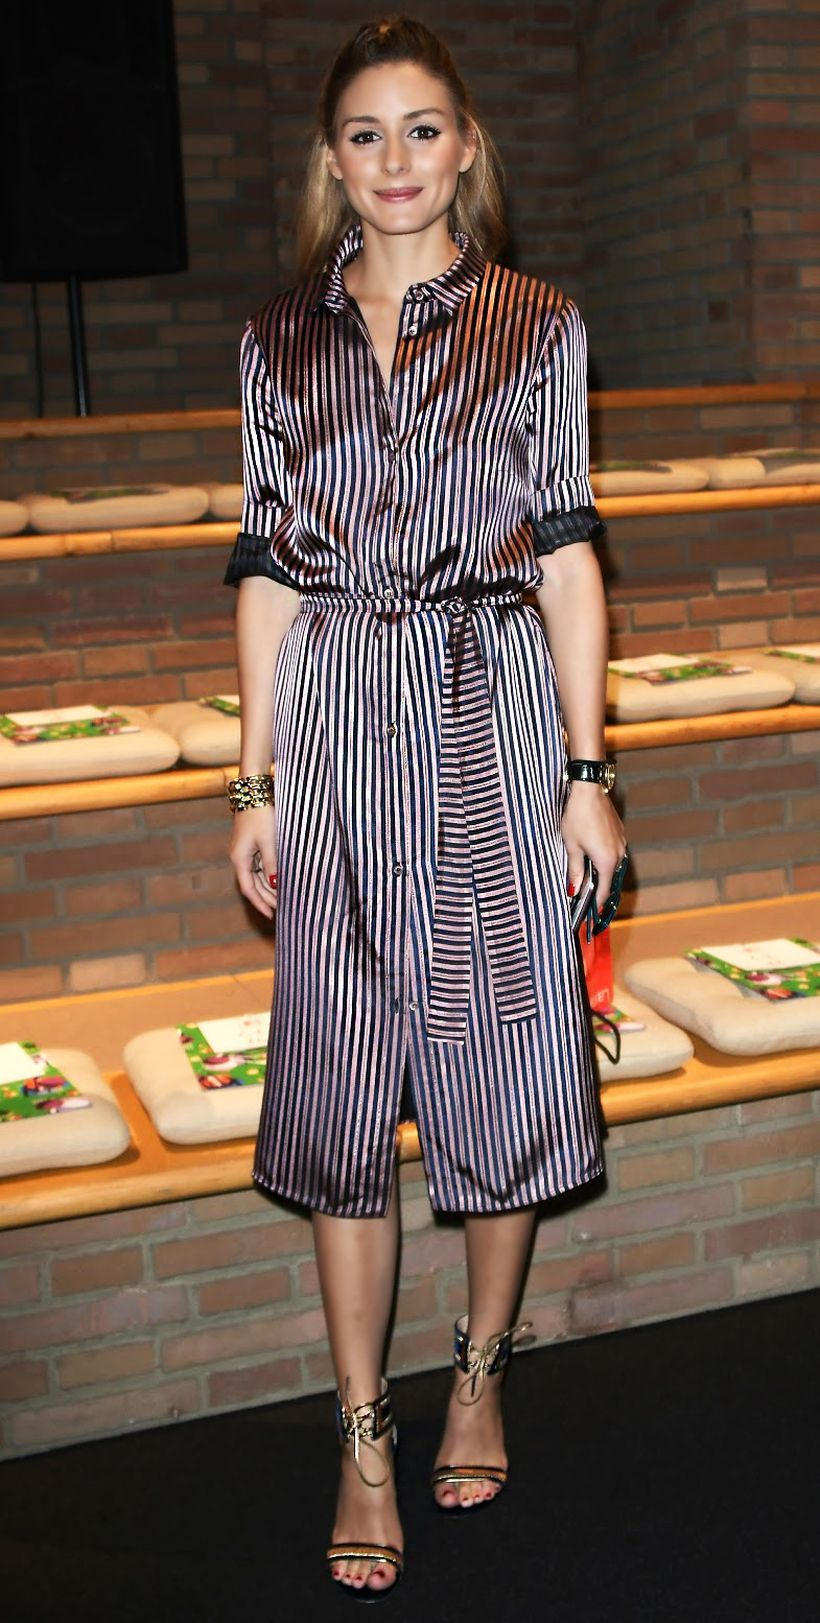 Marvelous striped shirtdresses outfits ideas 51